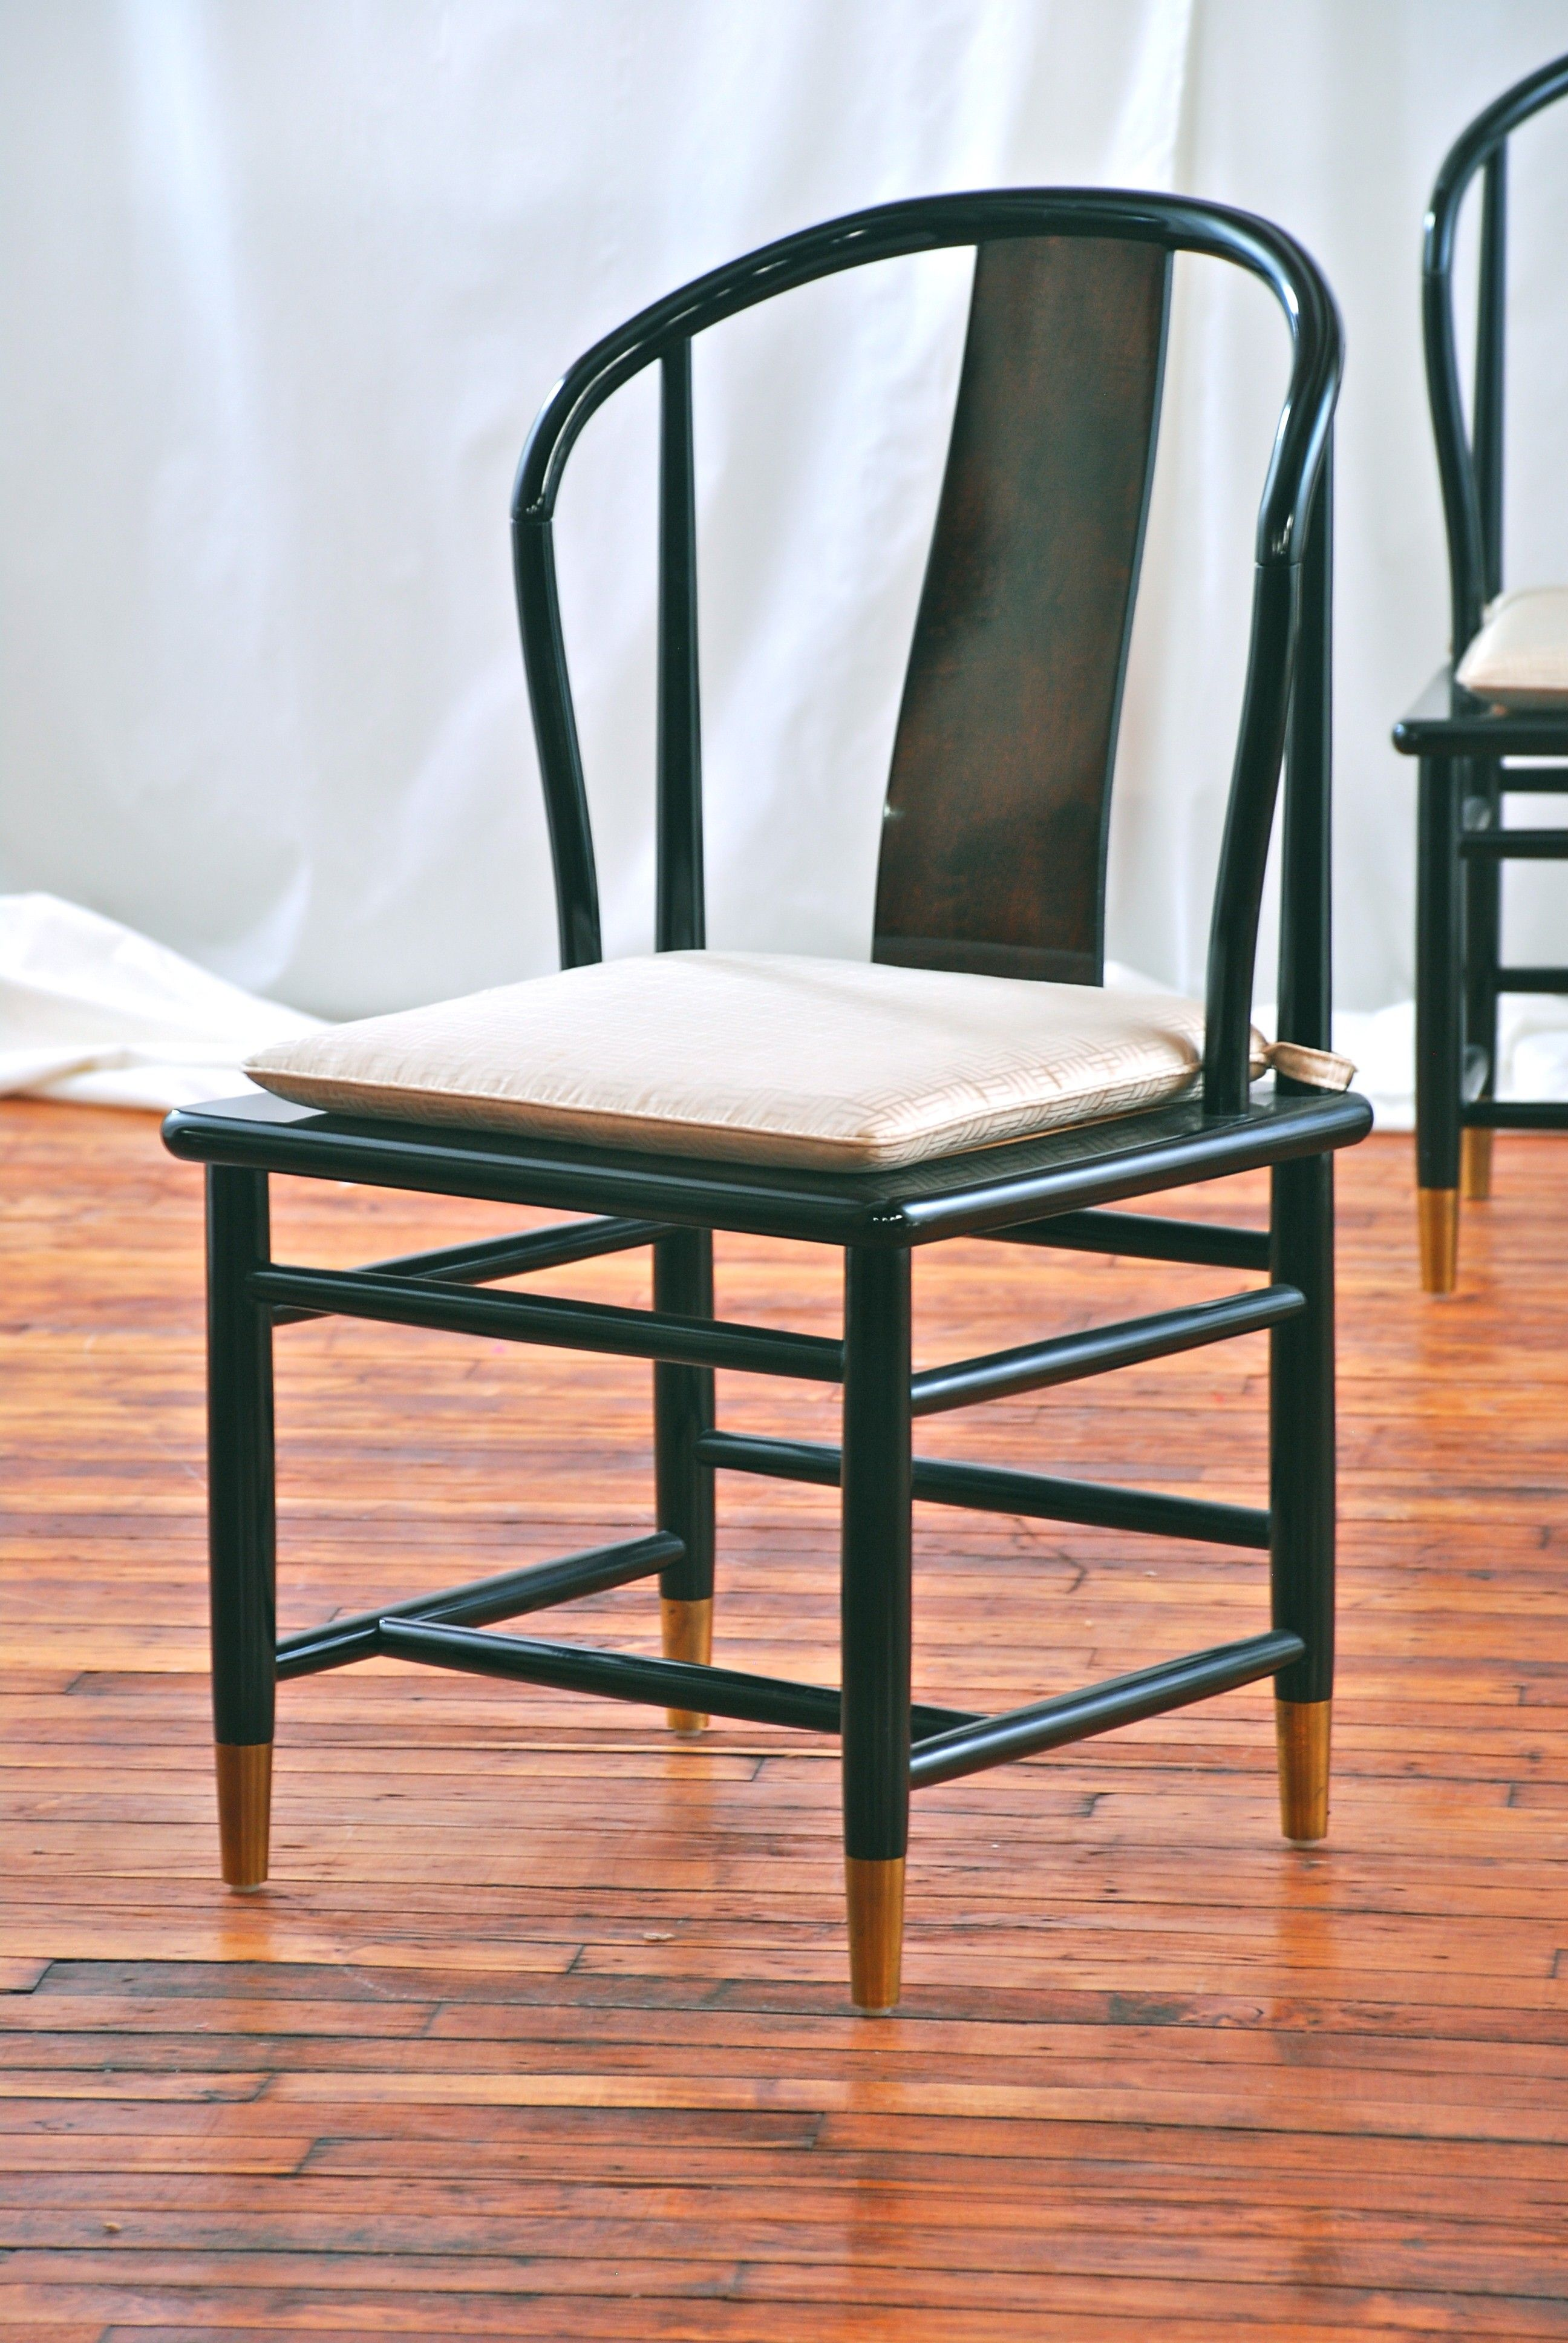 Black lacquer dining chair 175 Chicago http//furnishly